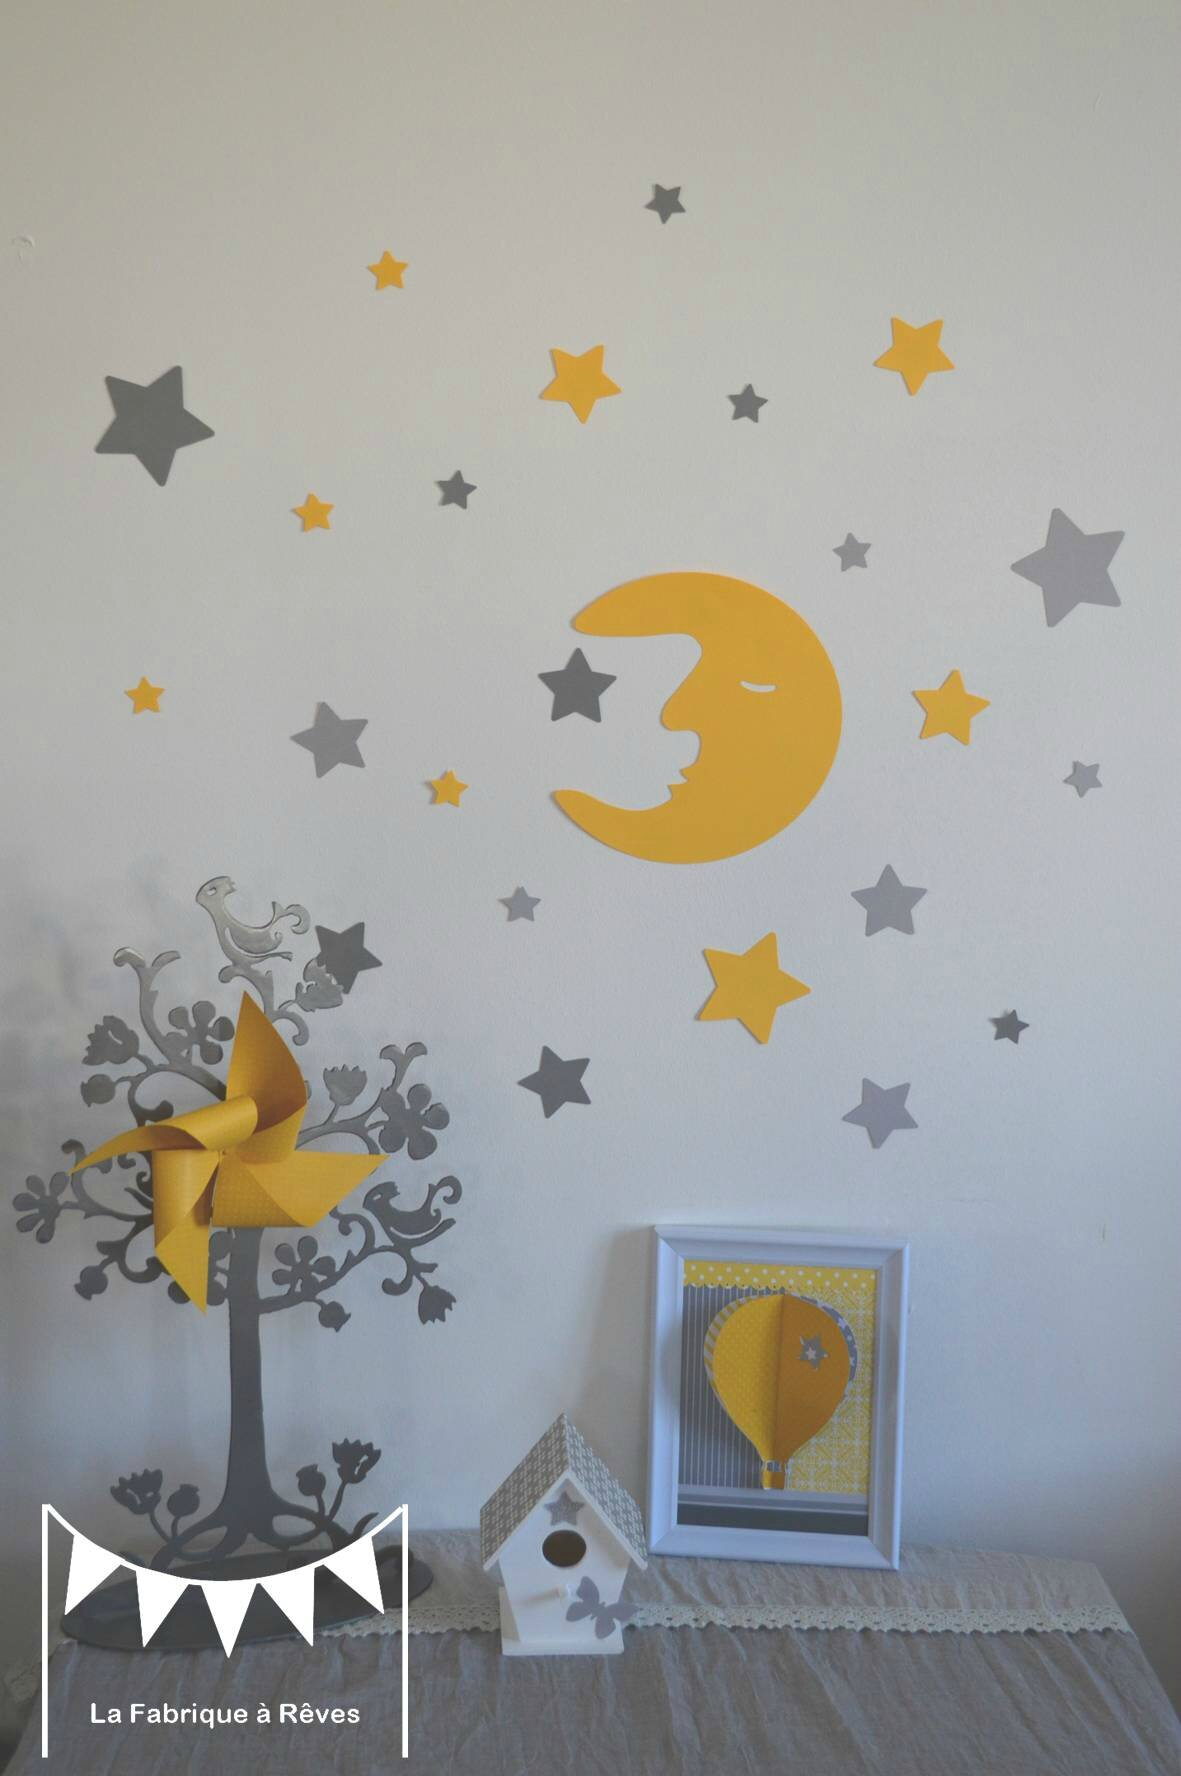 Stickers D Coration Chambre Enfant Fille B B Gar On Lune Et Toiles Jaune Gris Photo De Th Me